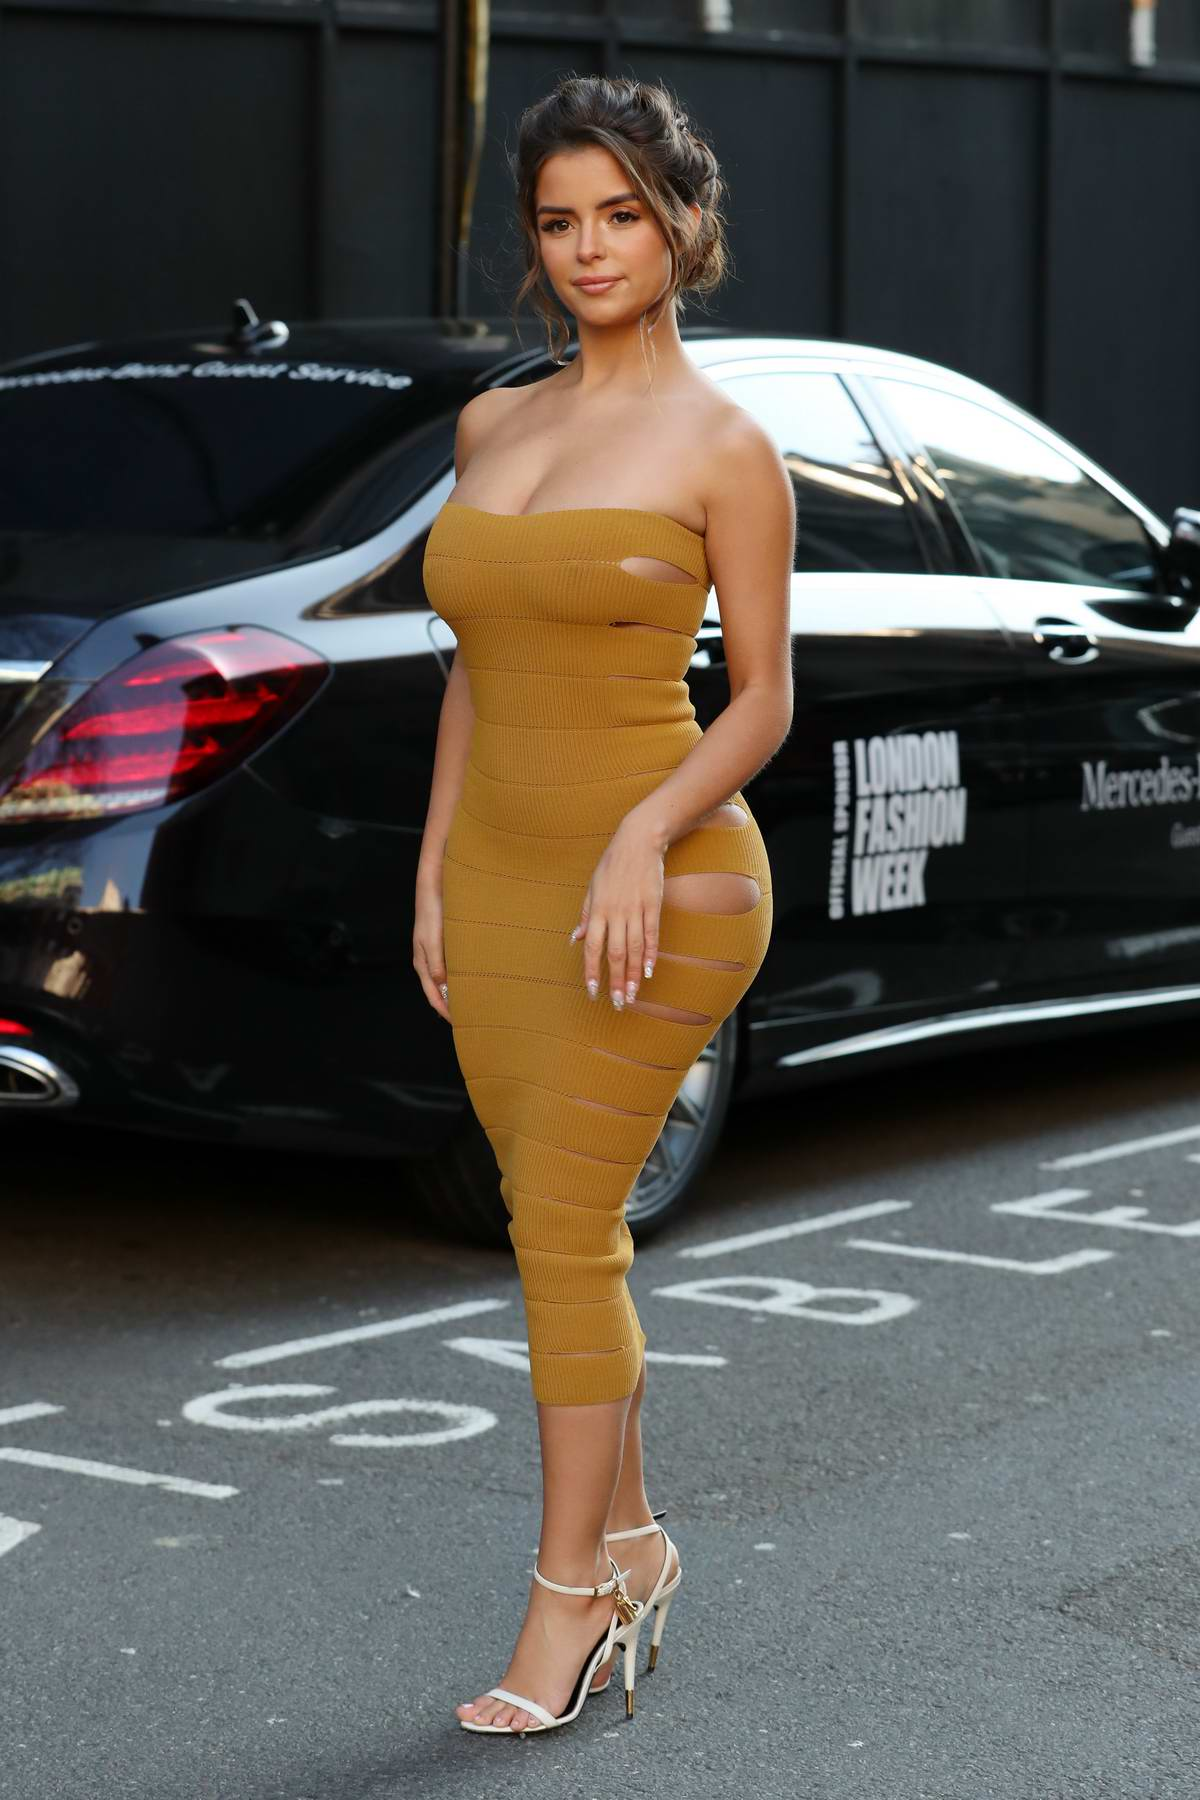 Demi Rose stuns in a mustard yellow strapless dress while out during London Fashion Week in London, UK